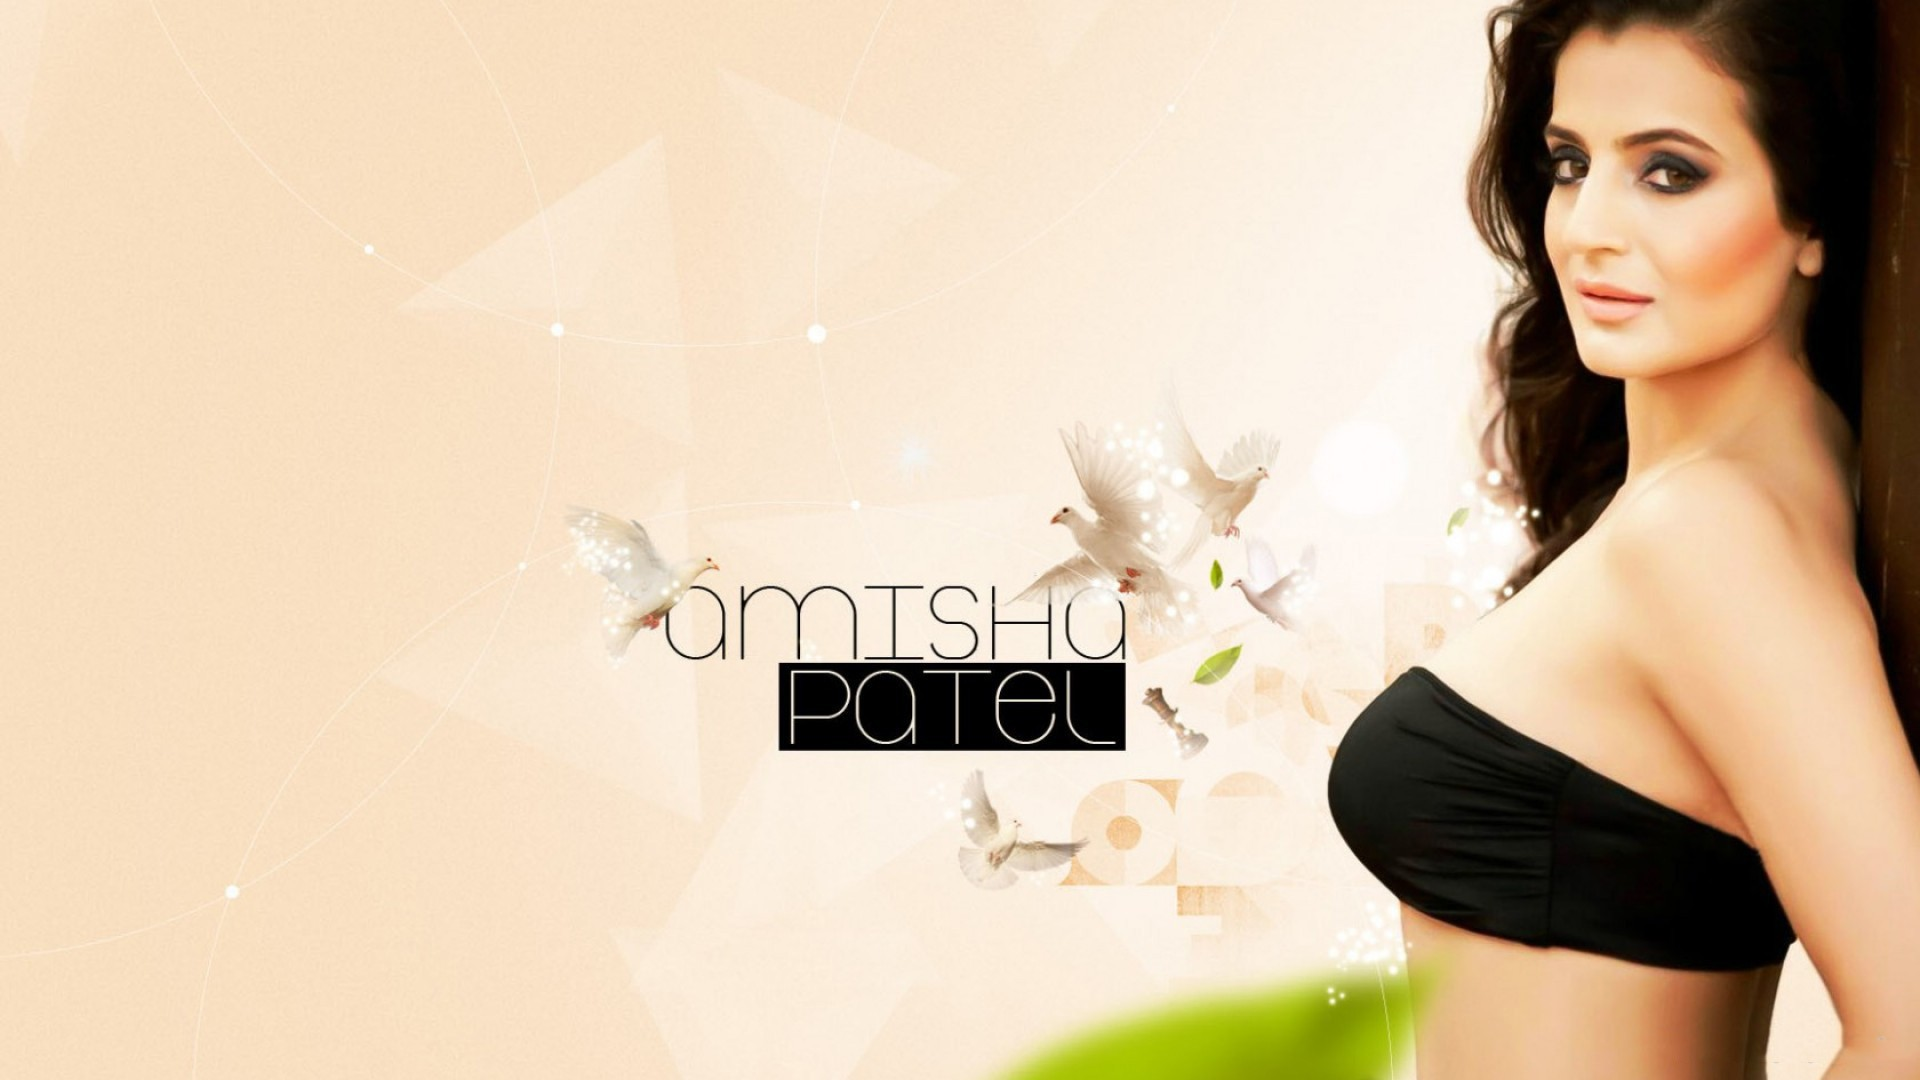 ameesha patel wallpapers - photo #26